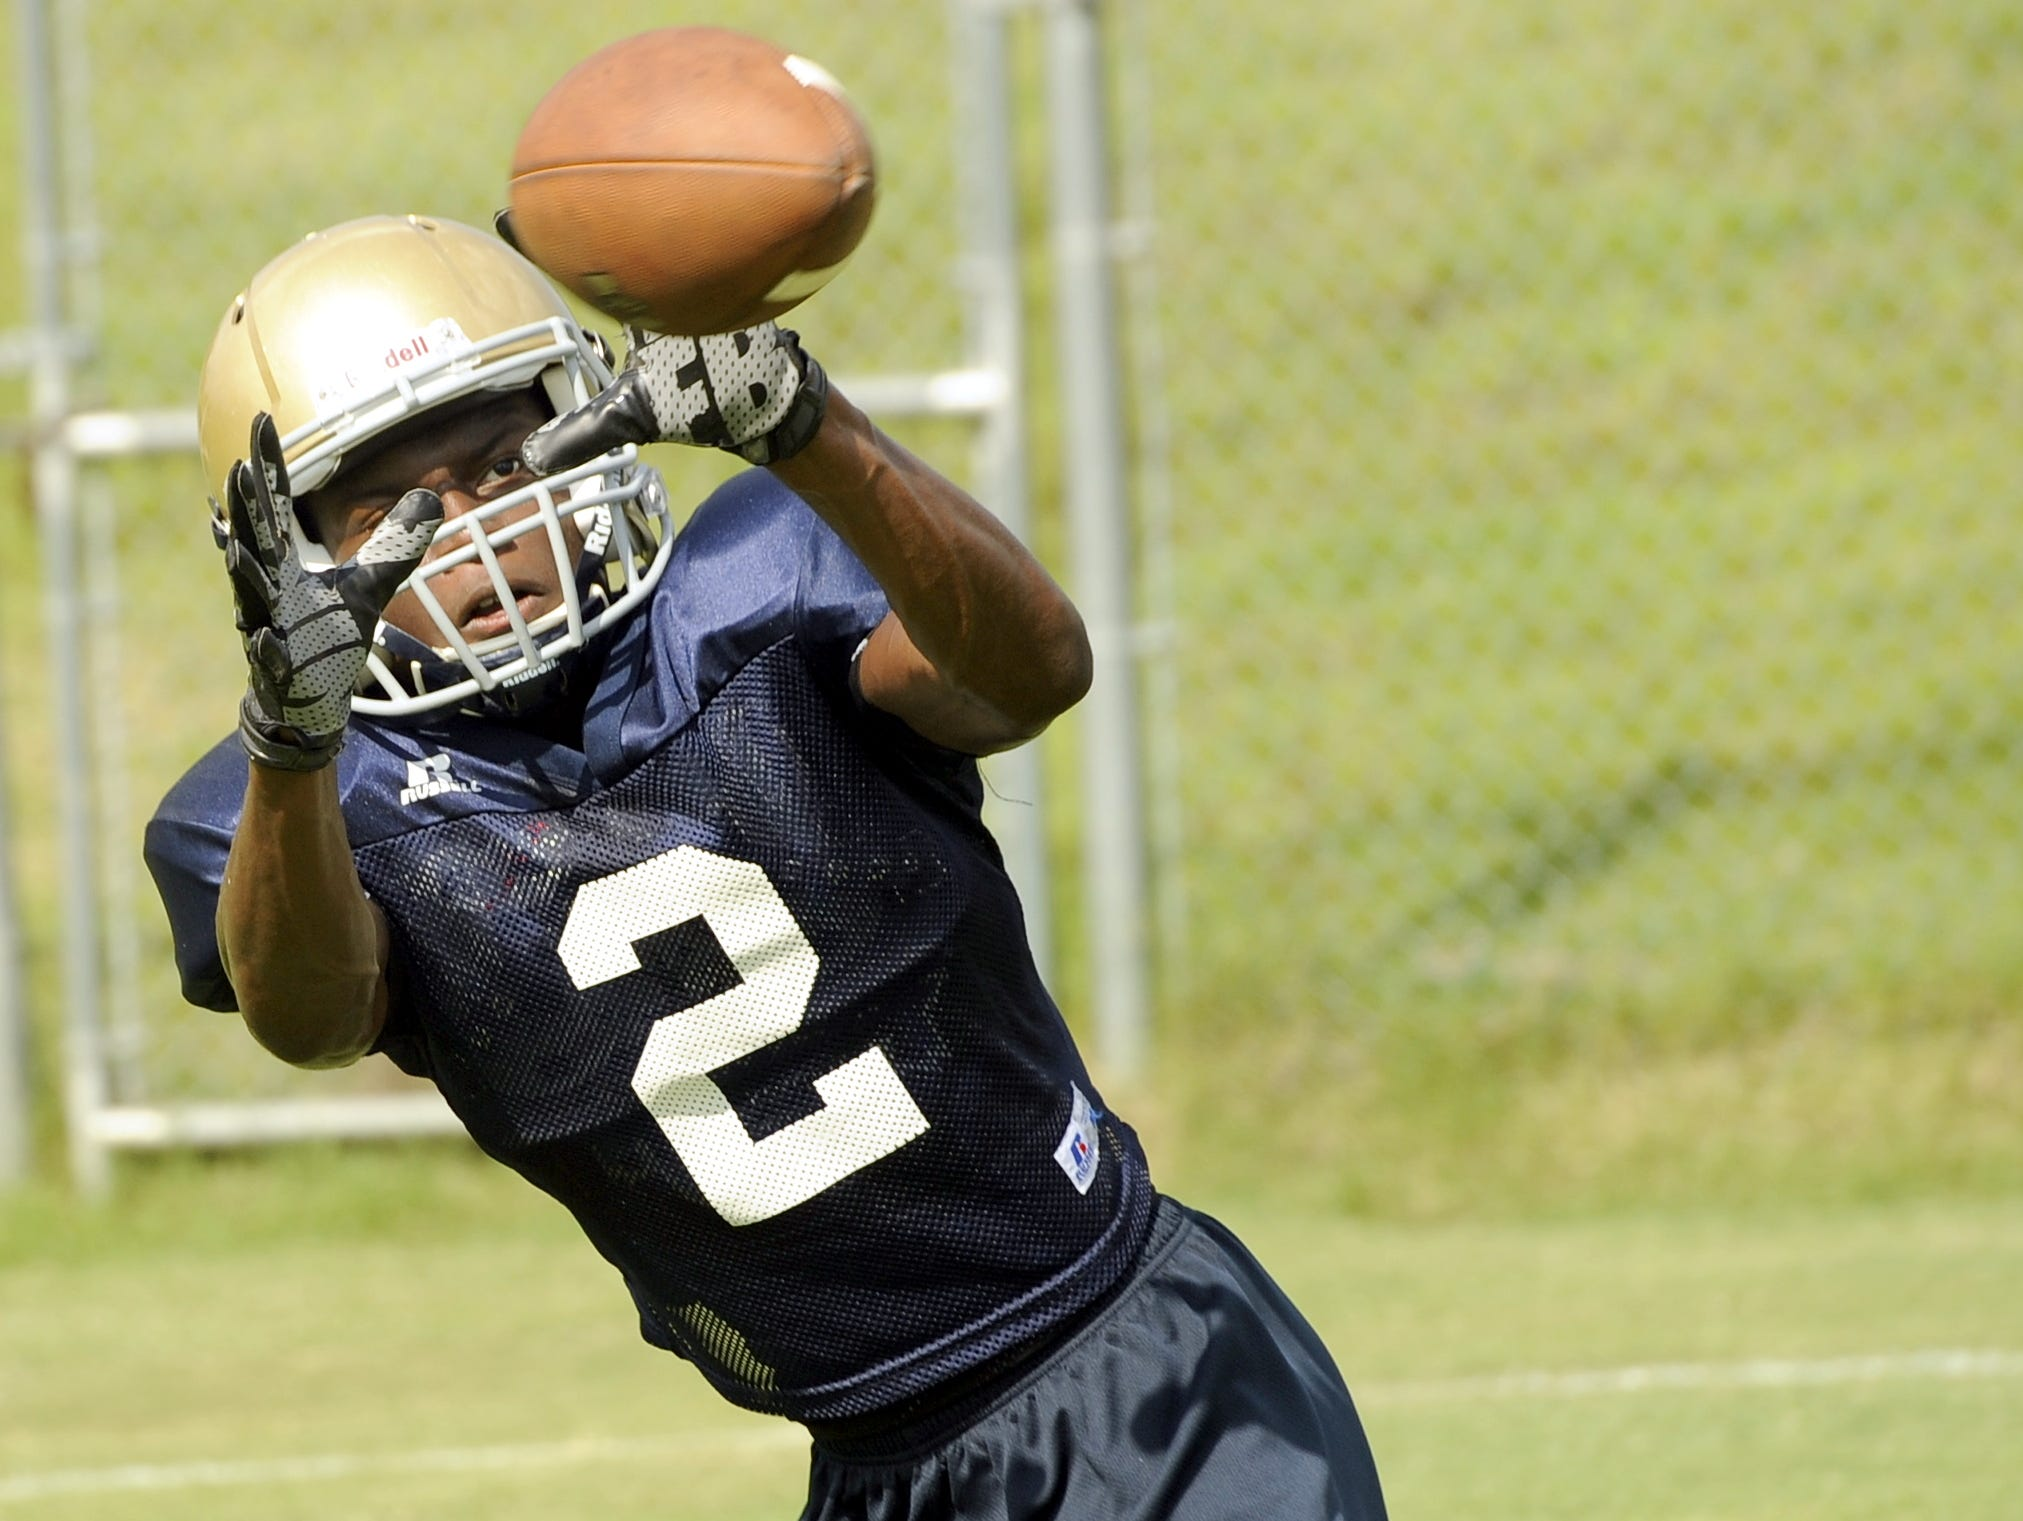 Independence sophomore wide receiver T.J. Sheffield looks in a pass during a recent practice.